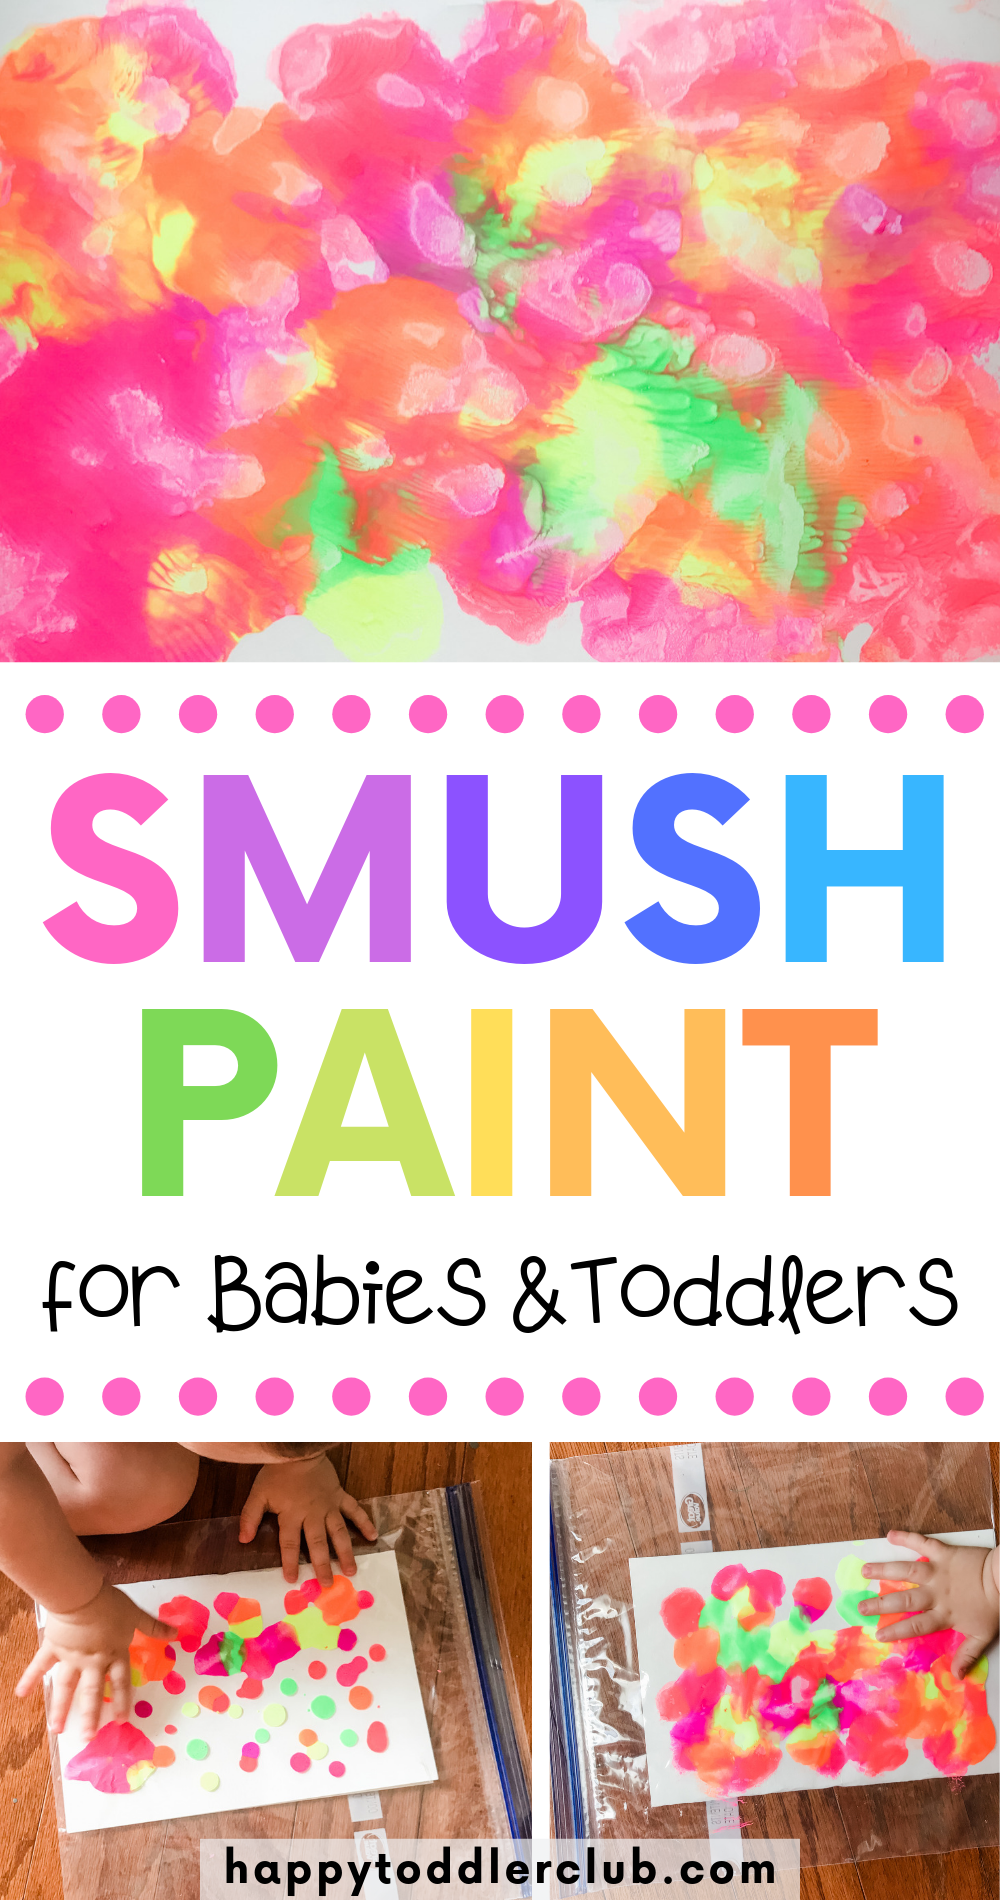 EASY & BEAUTIFUL ART FOR KIDS - a DIY craft easy enough for babies and gorgeous enough to hang on the wall! Perfect indoor activity for babies, toddlers, or even older kids. This DIY can be saved as wall art, a homemade greeting card, etc. - endless possibilities with this project! And the best part is there is zero mess involved!